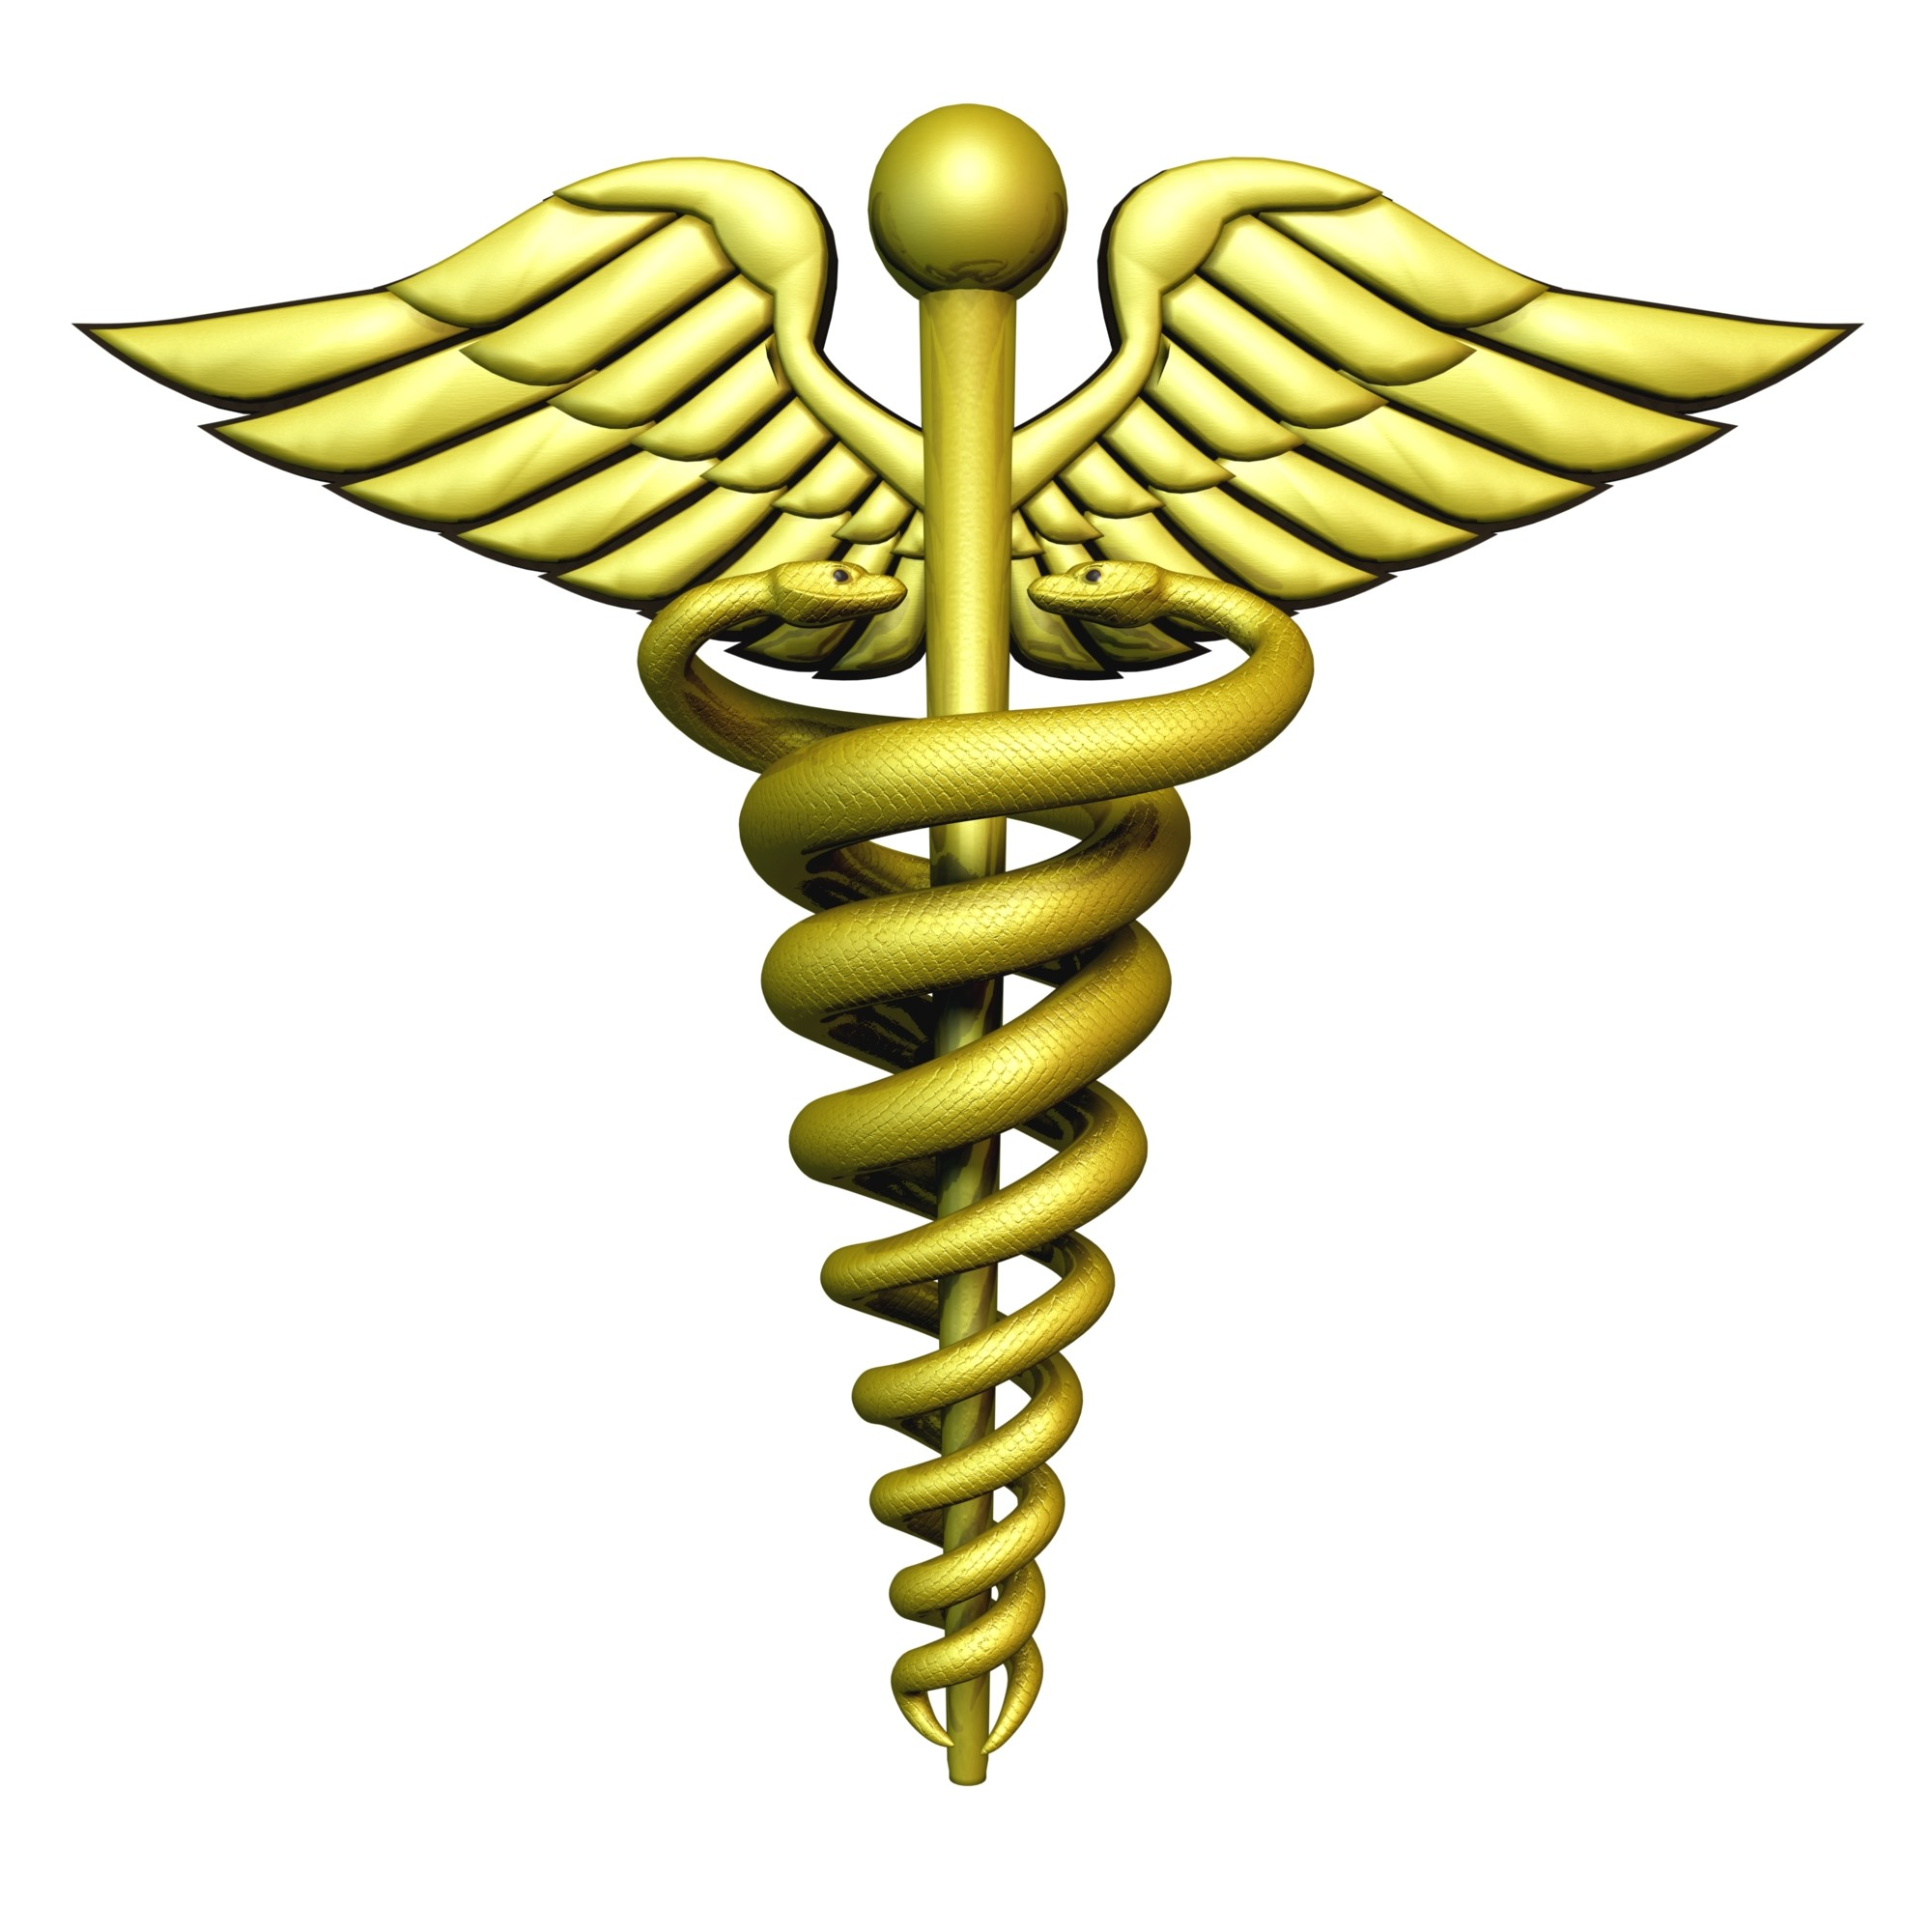 What does the snake represent on the medical symbol image doctors symbol free download best doctors symbol on clipartmag 2000x2000 medical symbol caduceus snakes 3d model biocorpaavc